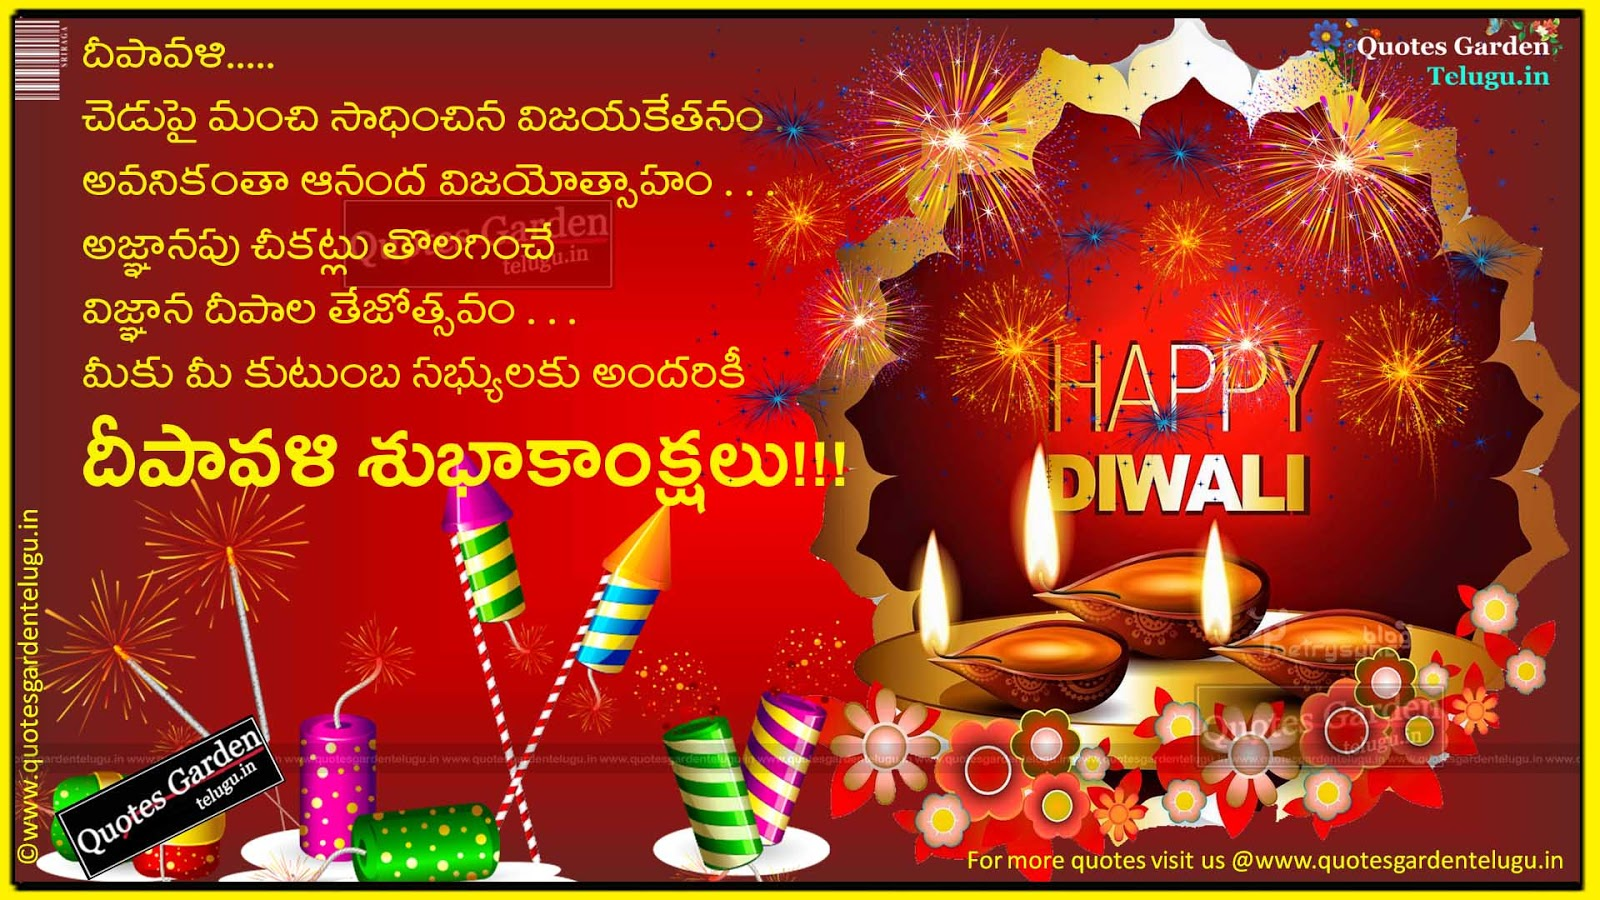 Telugu Diwali Kavithalu shubhakankshalu messages